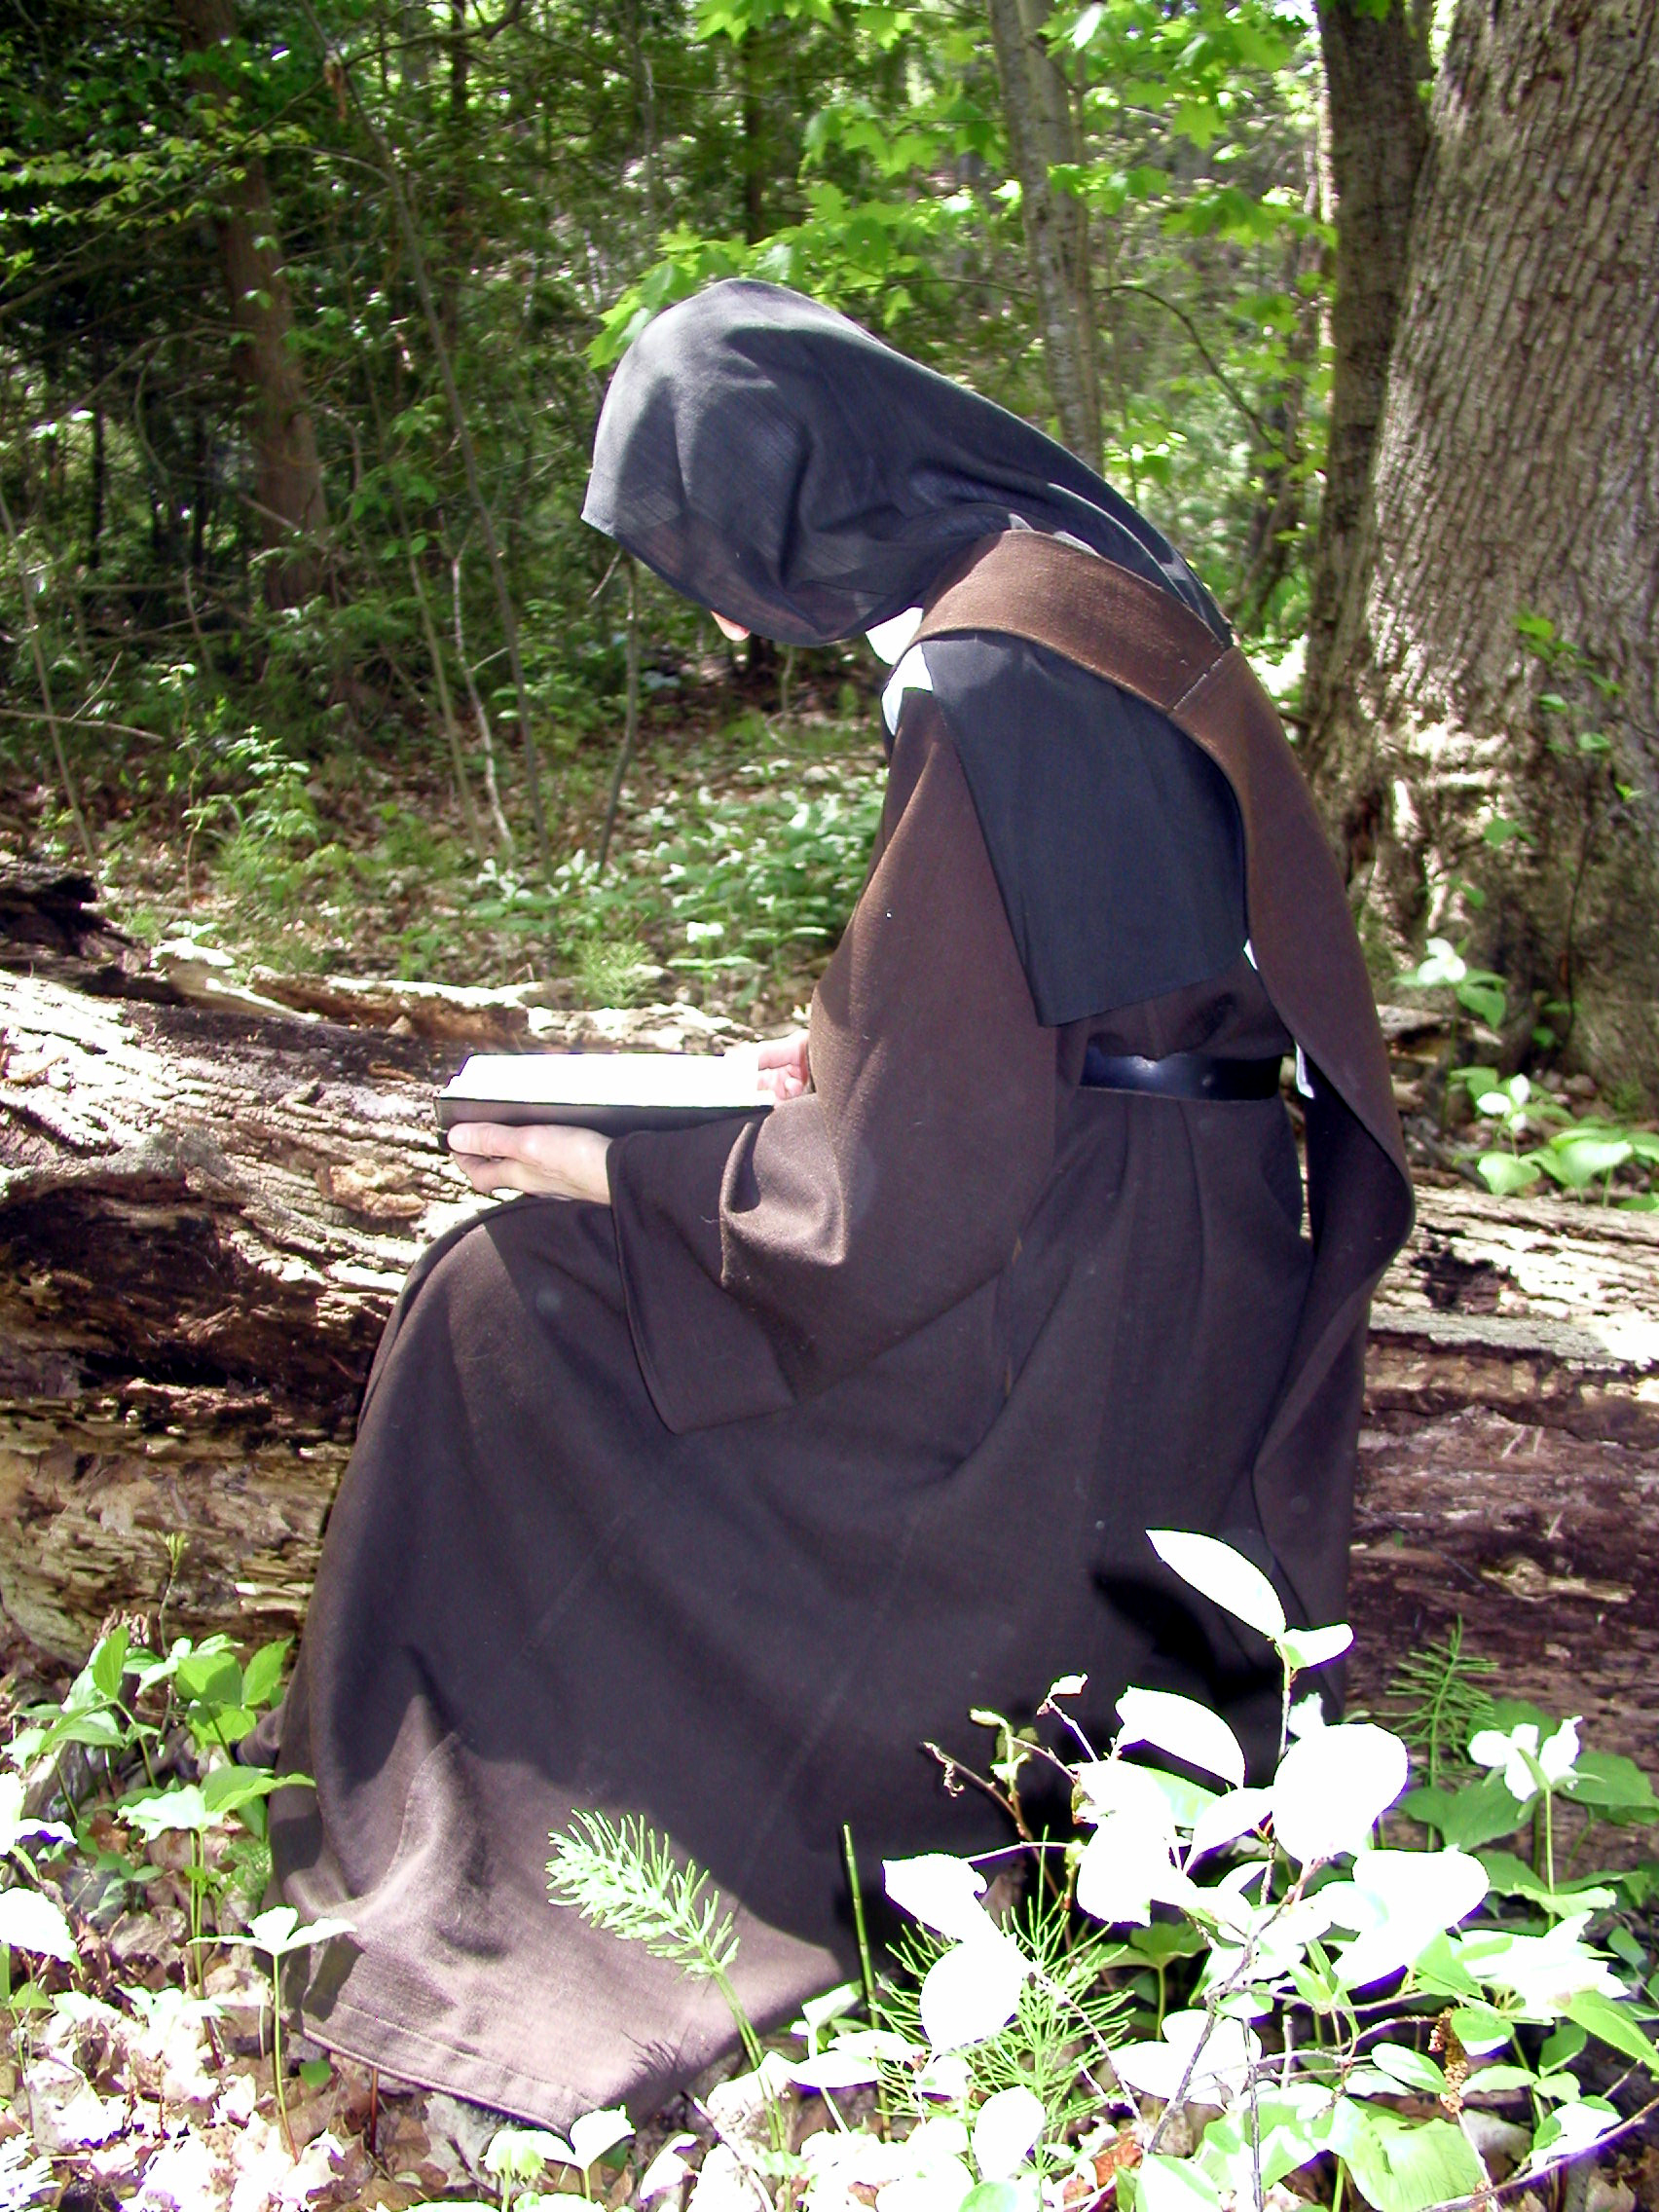 nun-in-woods.jpg